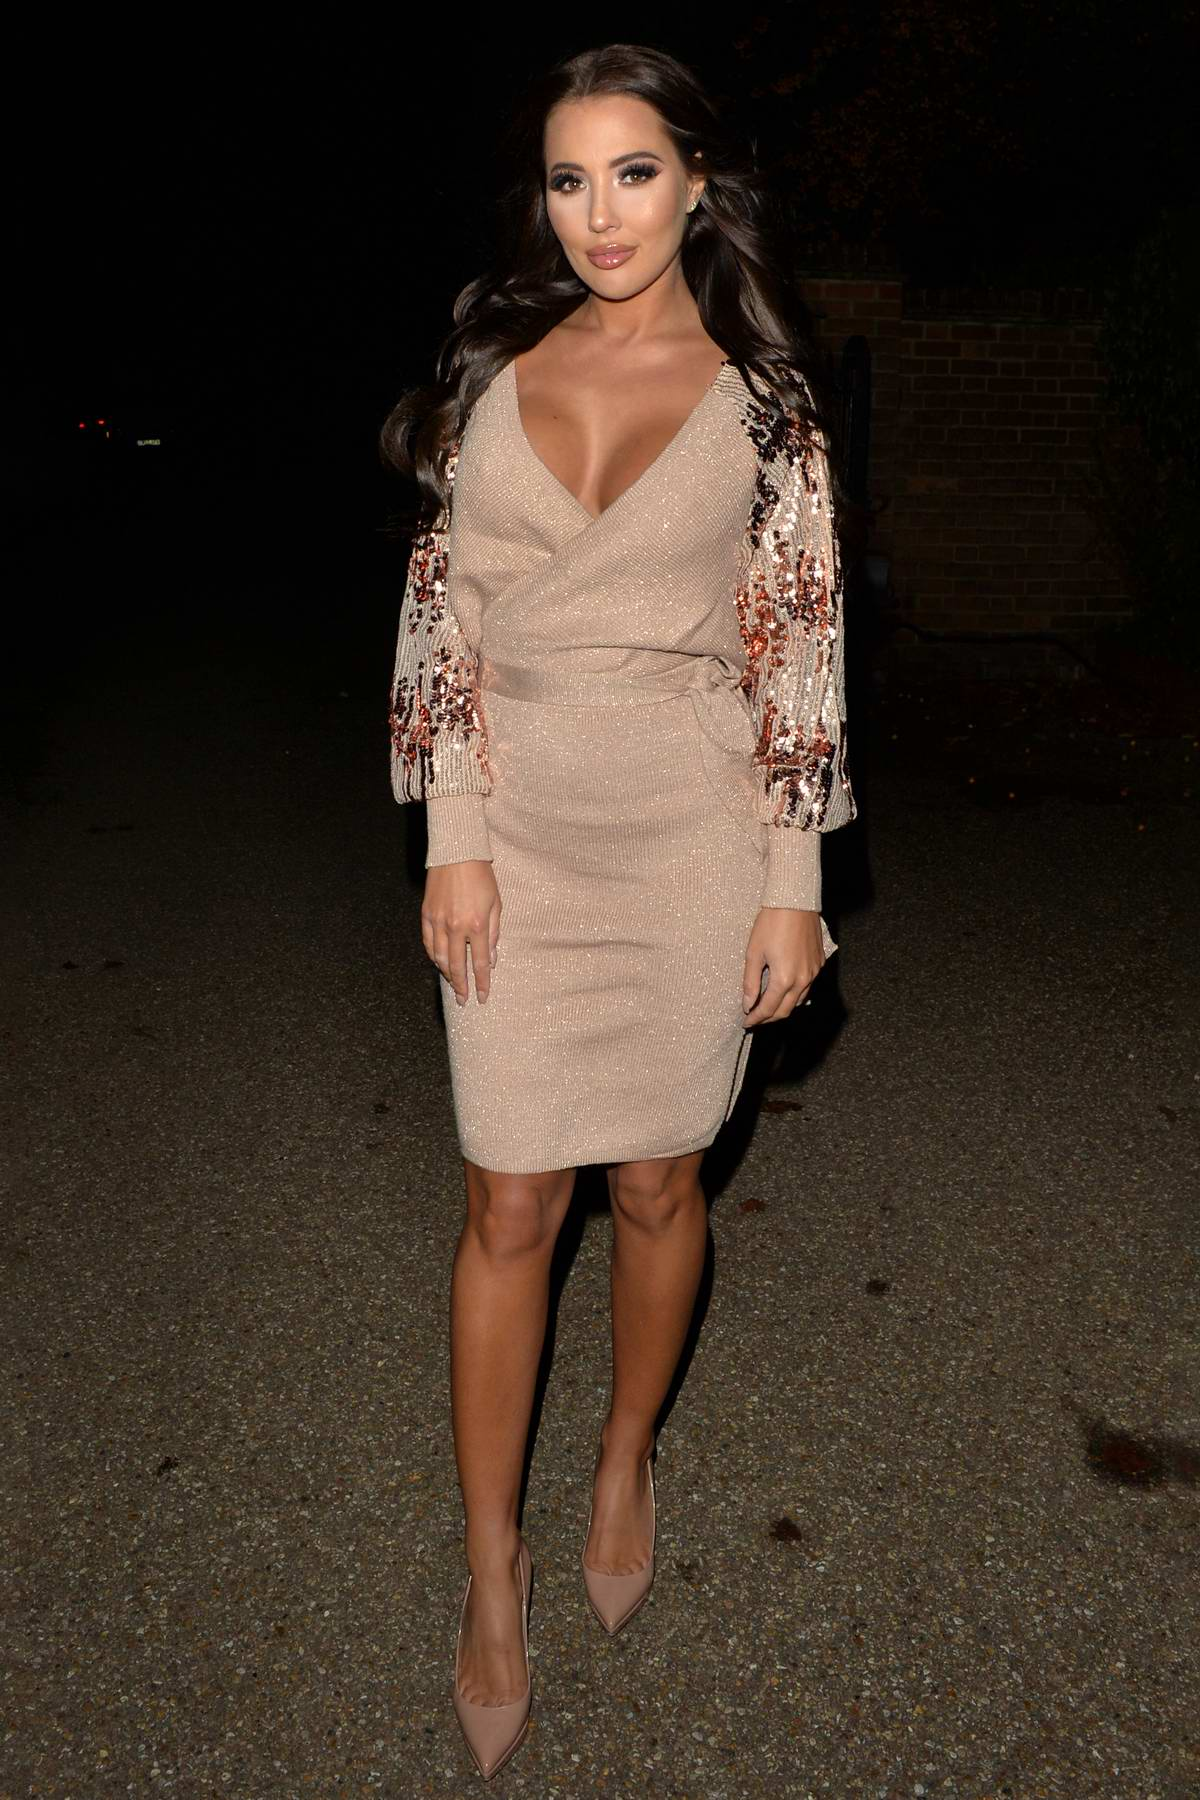 Yazmin Oukhellou seen wearing a beige dress during a night out at Alec's restaurant in Brentwood, Essex, UK